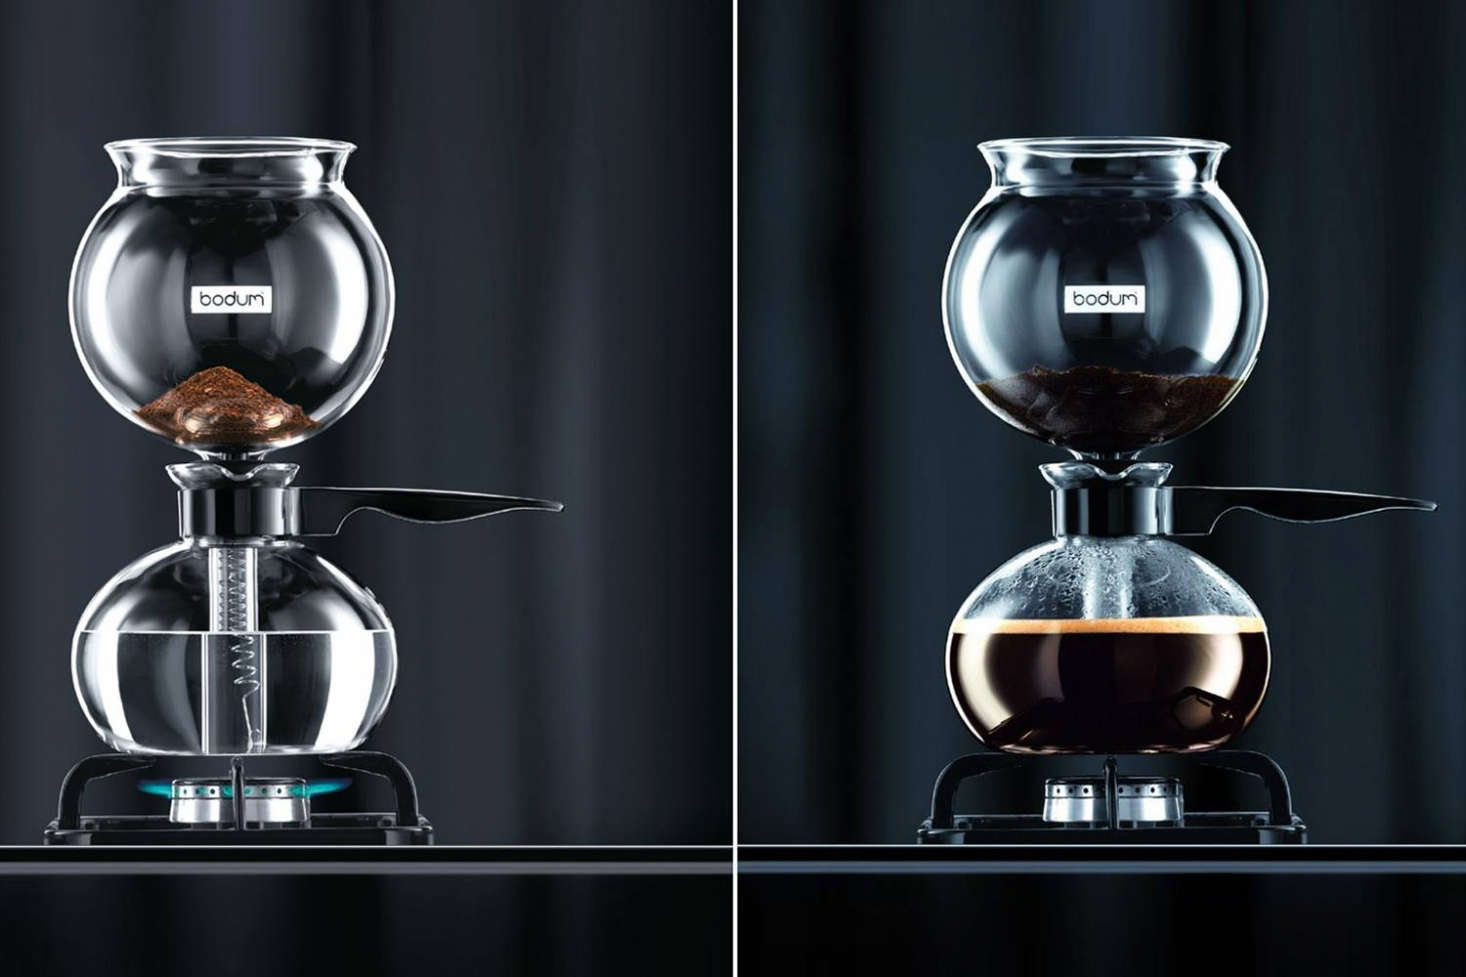 Bodum S Pebo Vacuum Coffee Maker On The Stovetop It Comes With A Scoop And